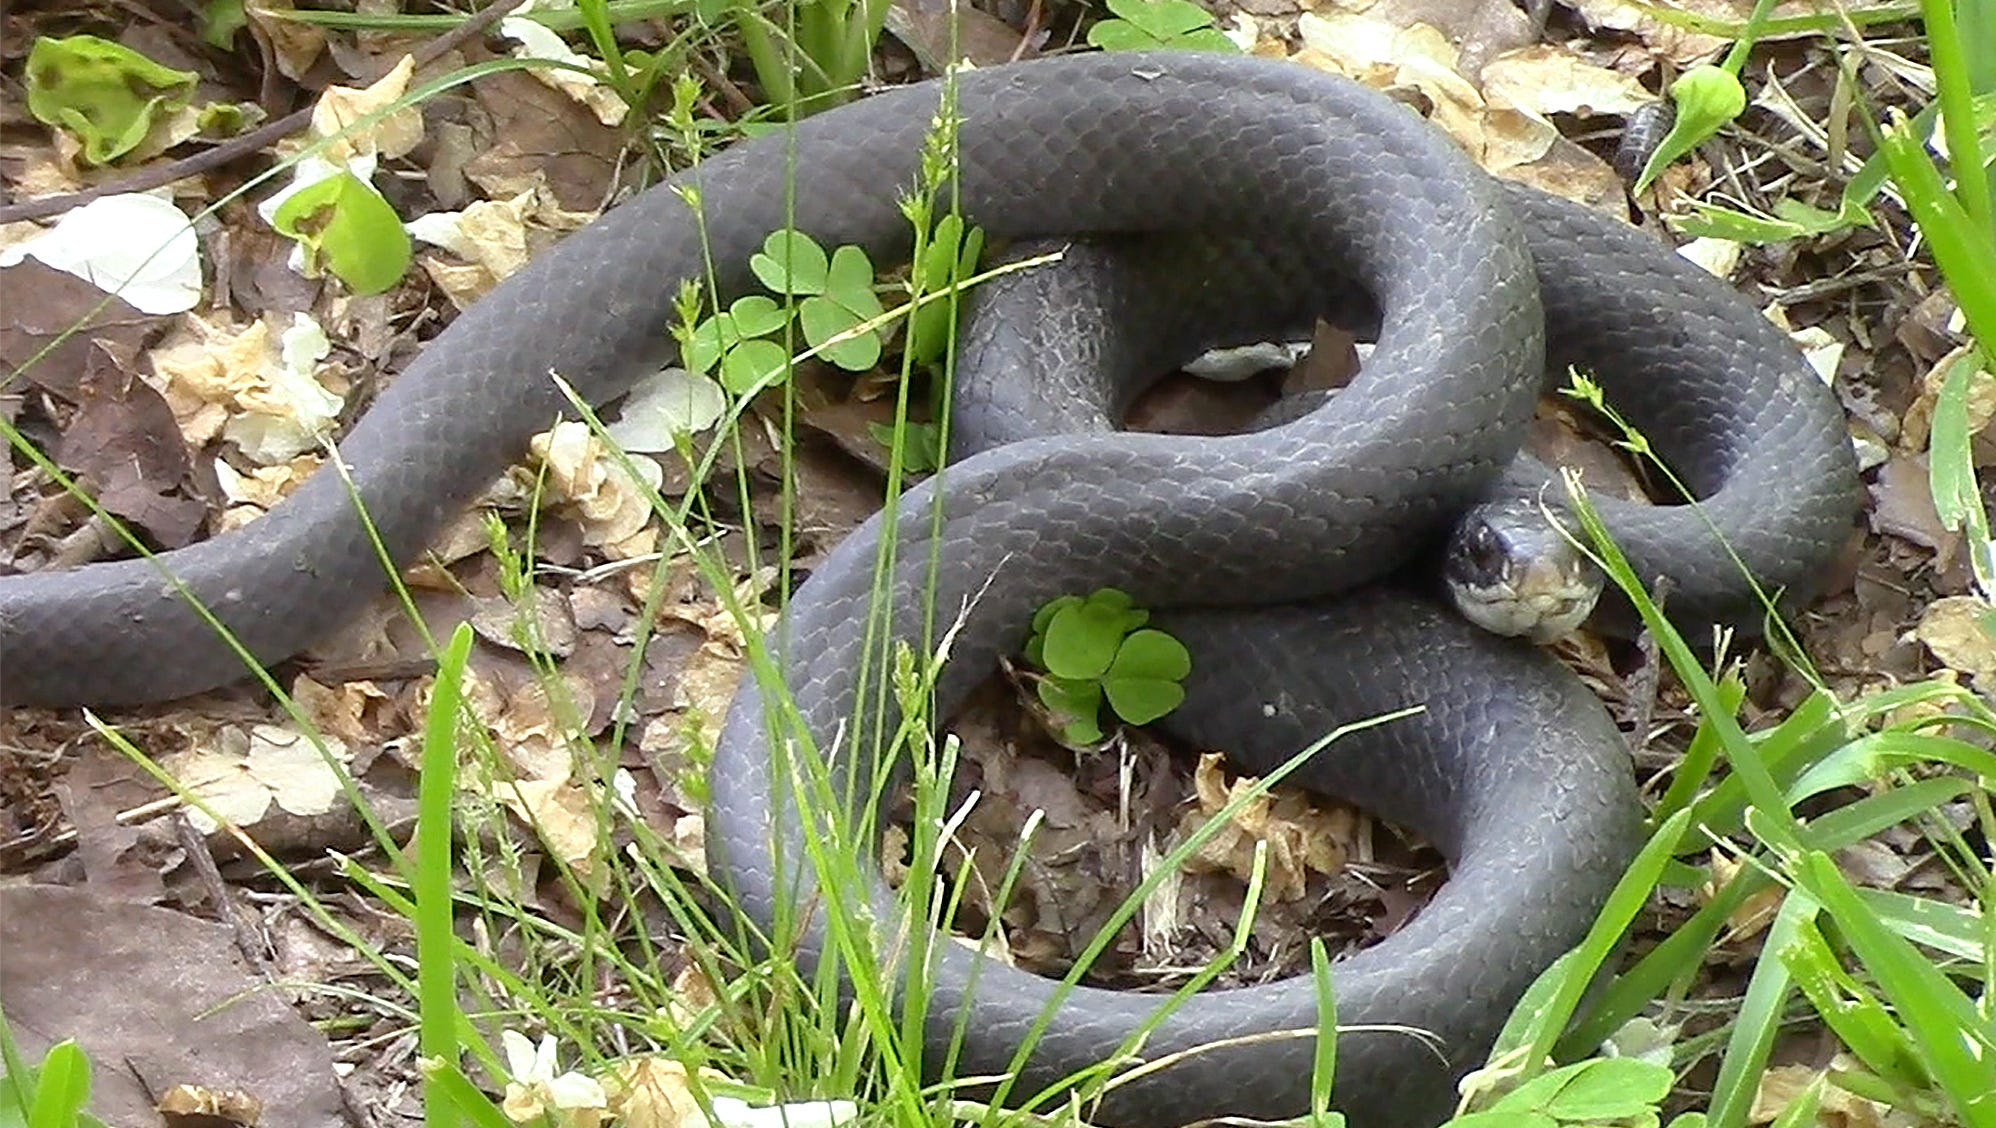 5 Snakes You May Encounter This Summer